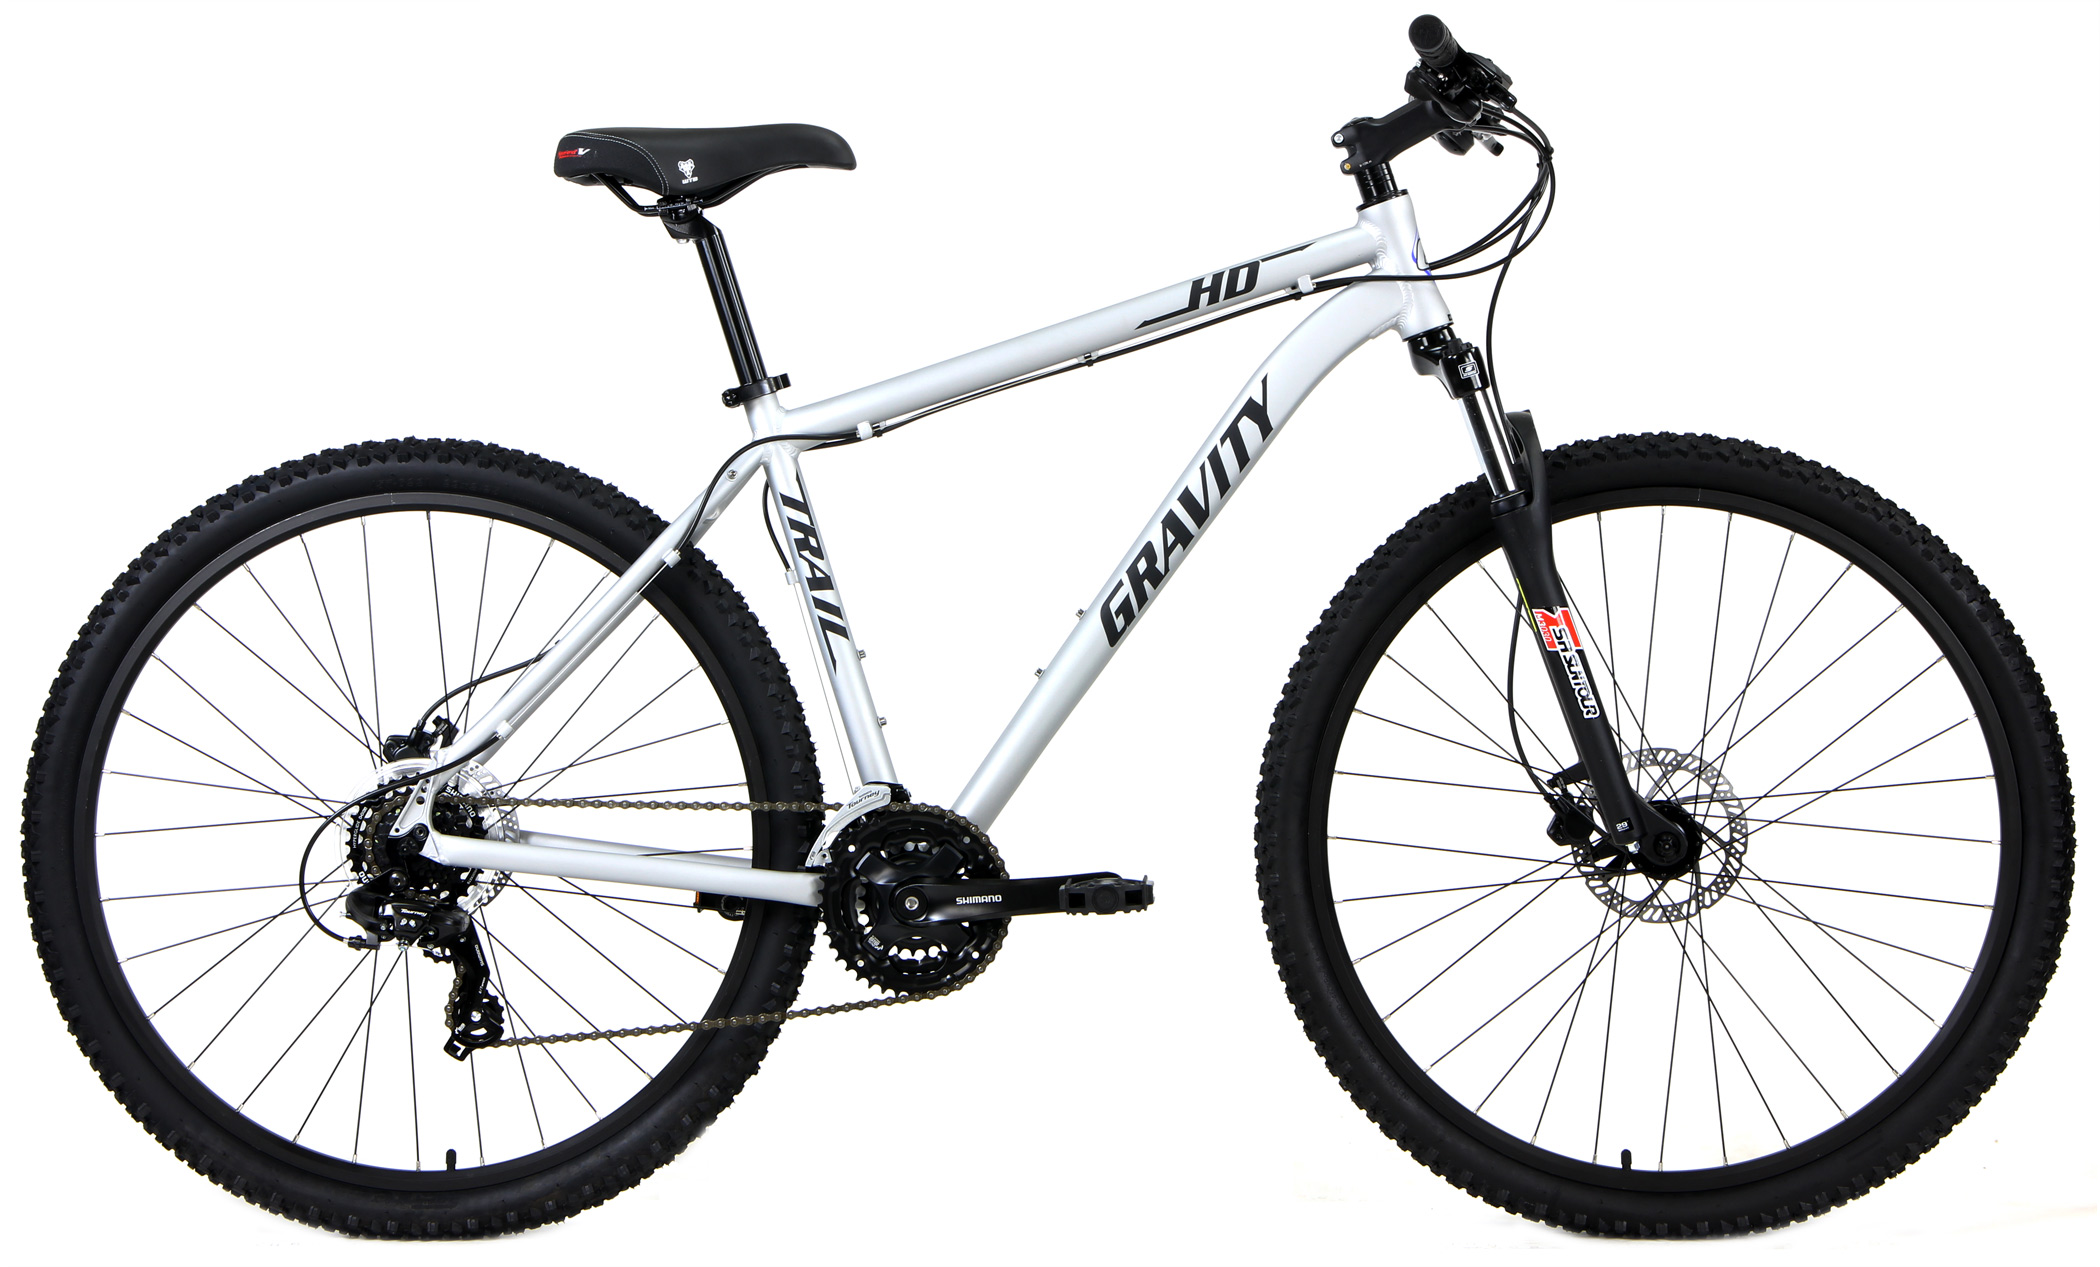 Bikes Gravity HD 29 Trail Long Travel Fork Hydraulic Disc Brakes 29 inch Wheels Image